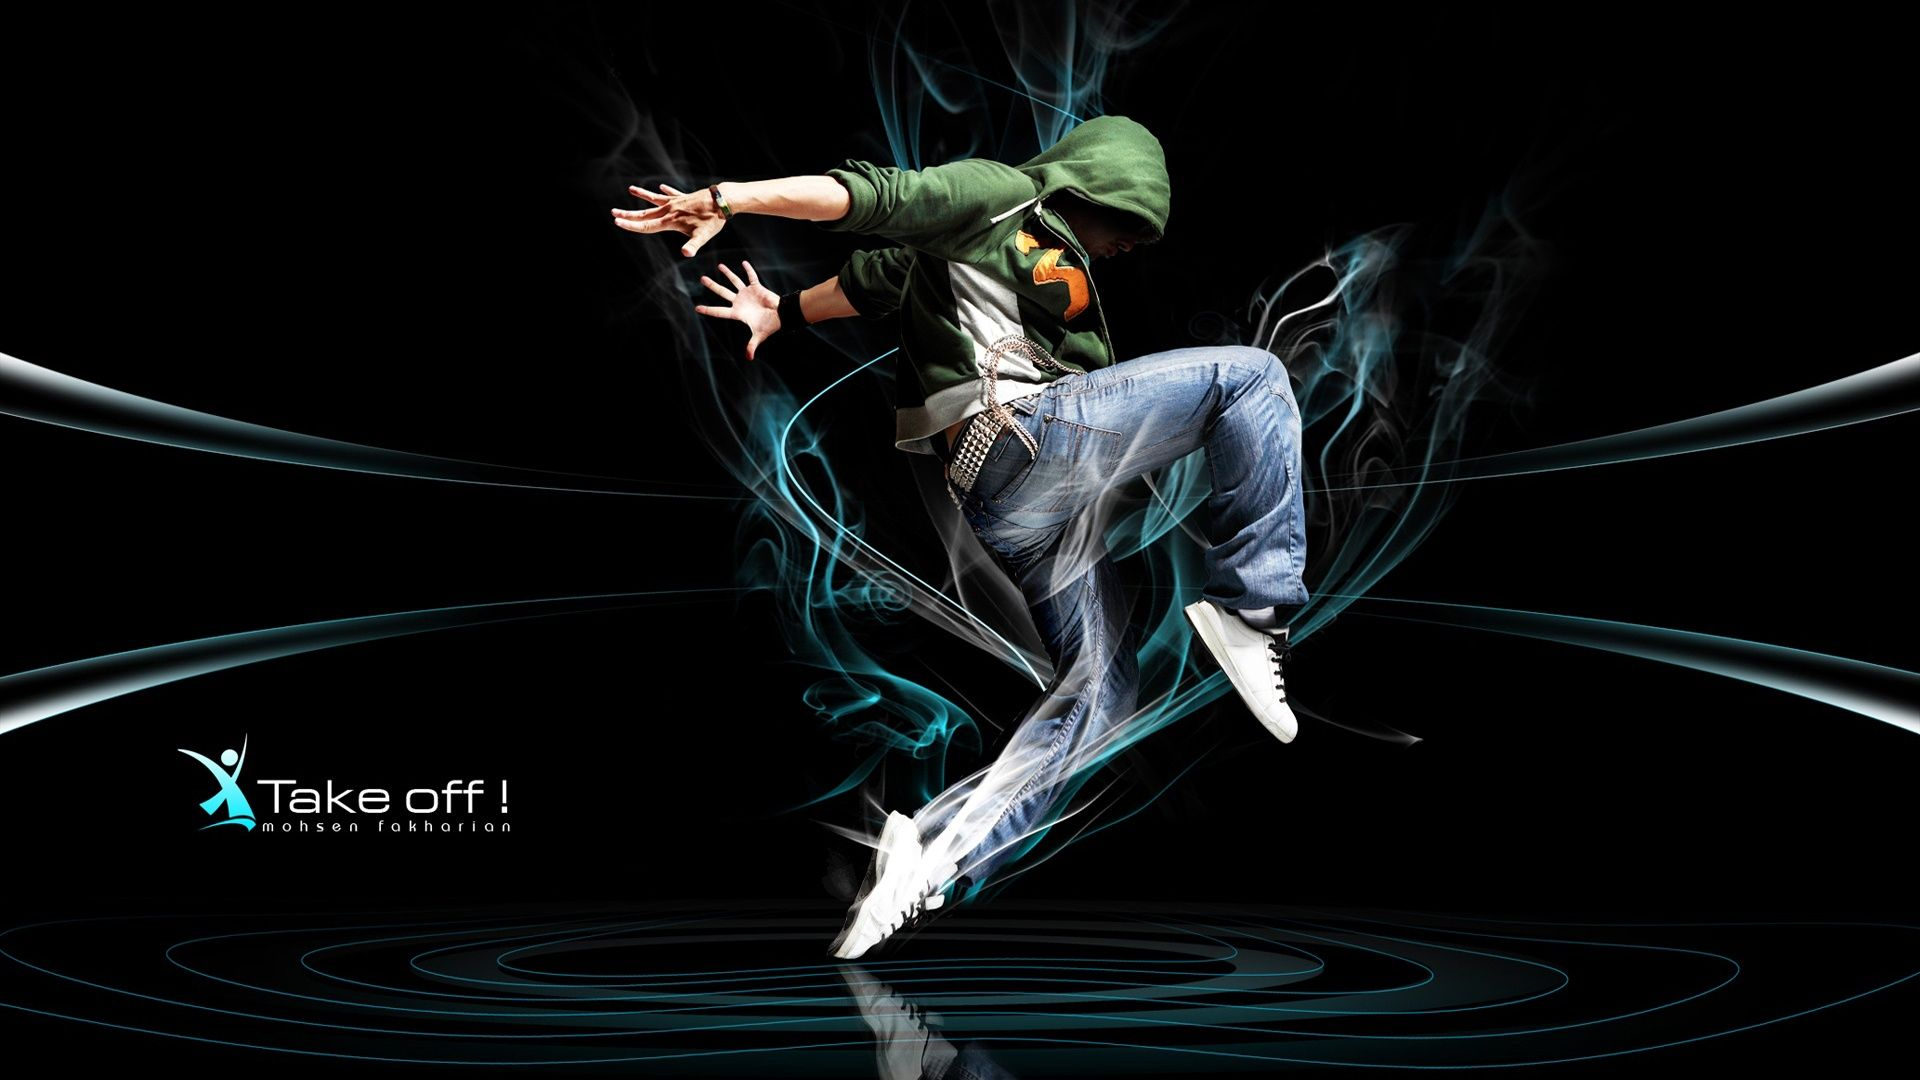 3d breakdance wallpaper 3d hip hop girl dance clip art girl hip 3d breakdance wallpaper 3d hip hop girl dance clip art girl hip voltagebd Images